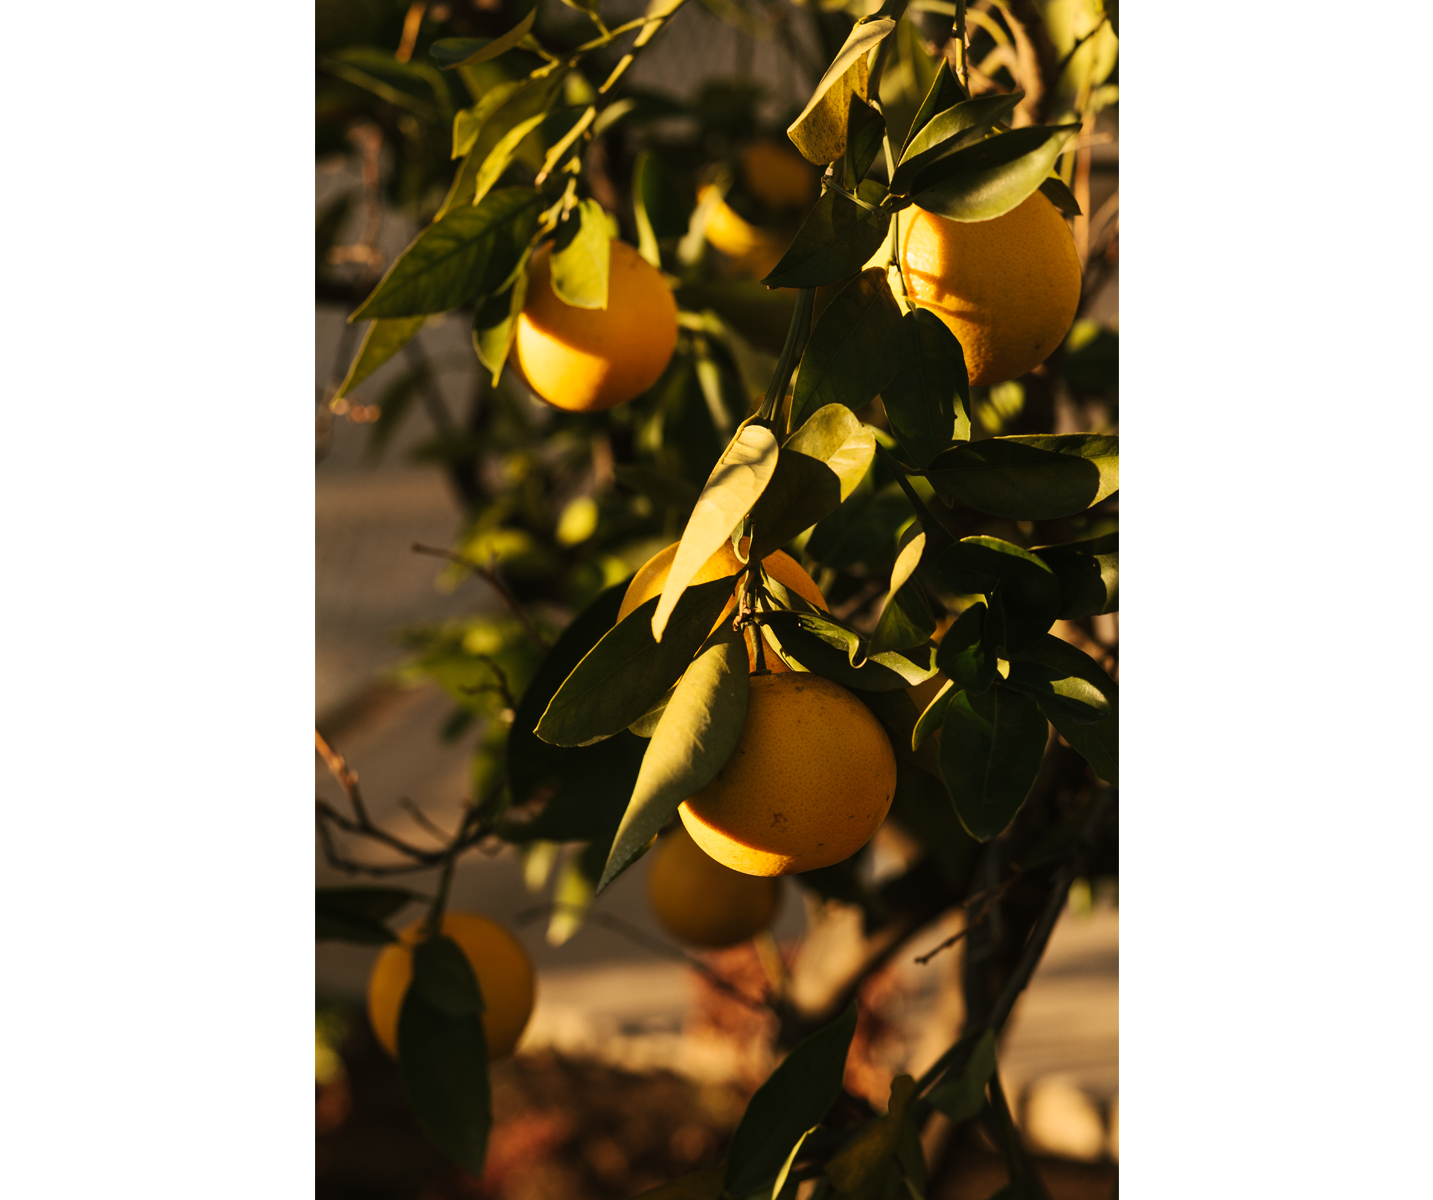 Lemon tree in the Los Feliz neighborhood of Los Angeles.  Brad Torchia is an LA-based editorial and commercial photographer.